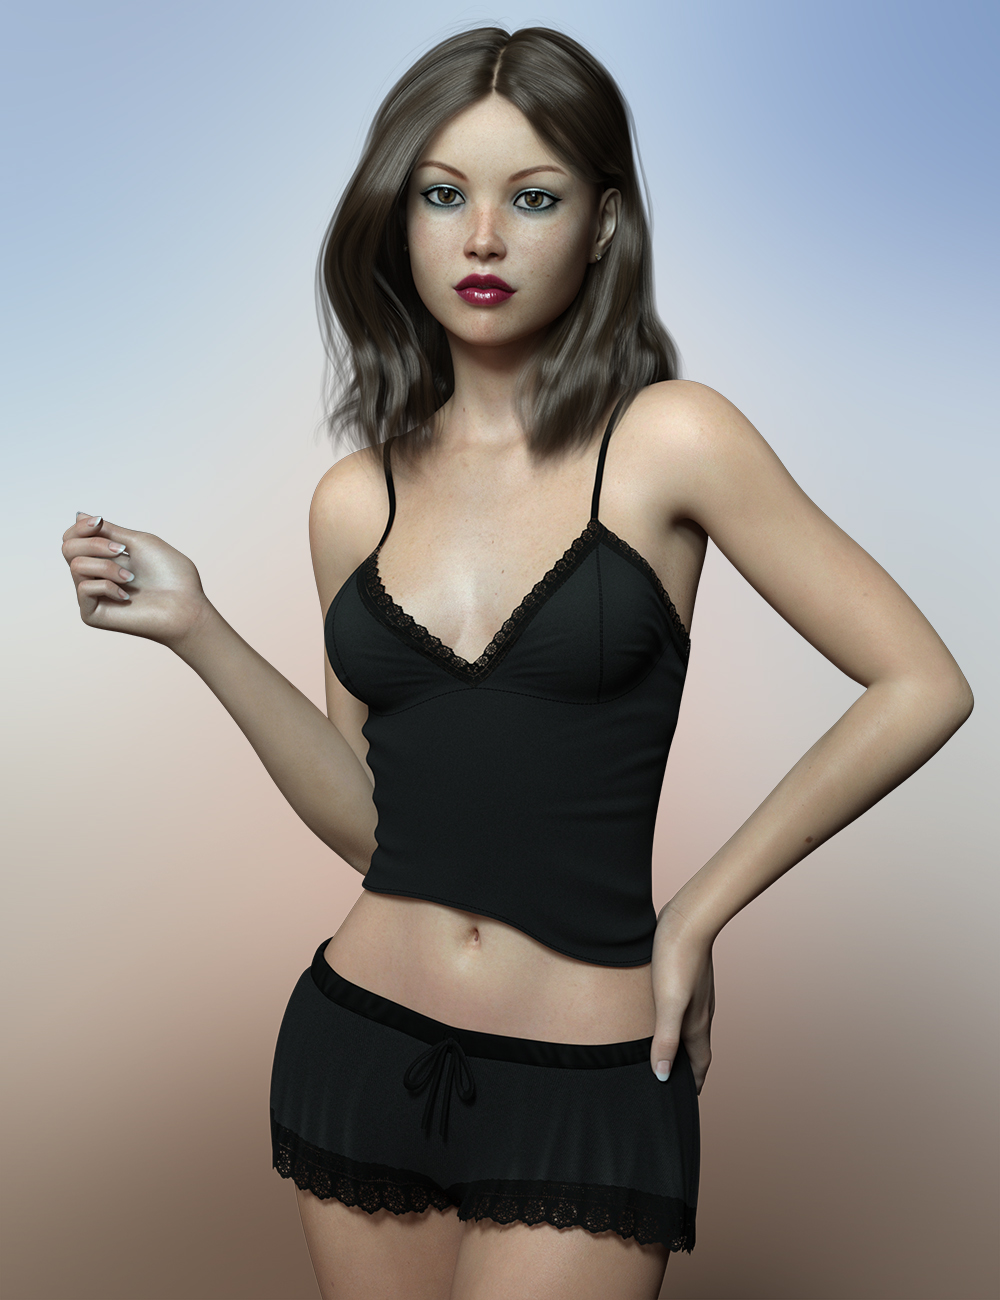 FWSA Gina for Victoria 7 and Genesis 3